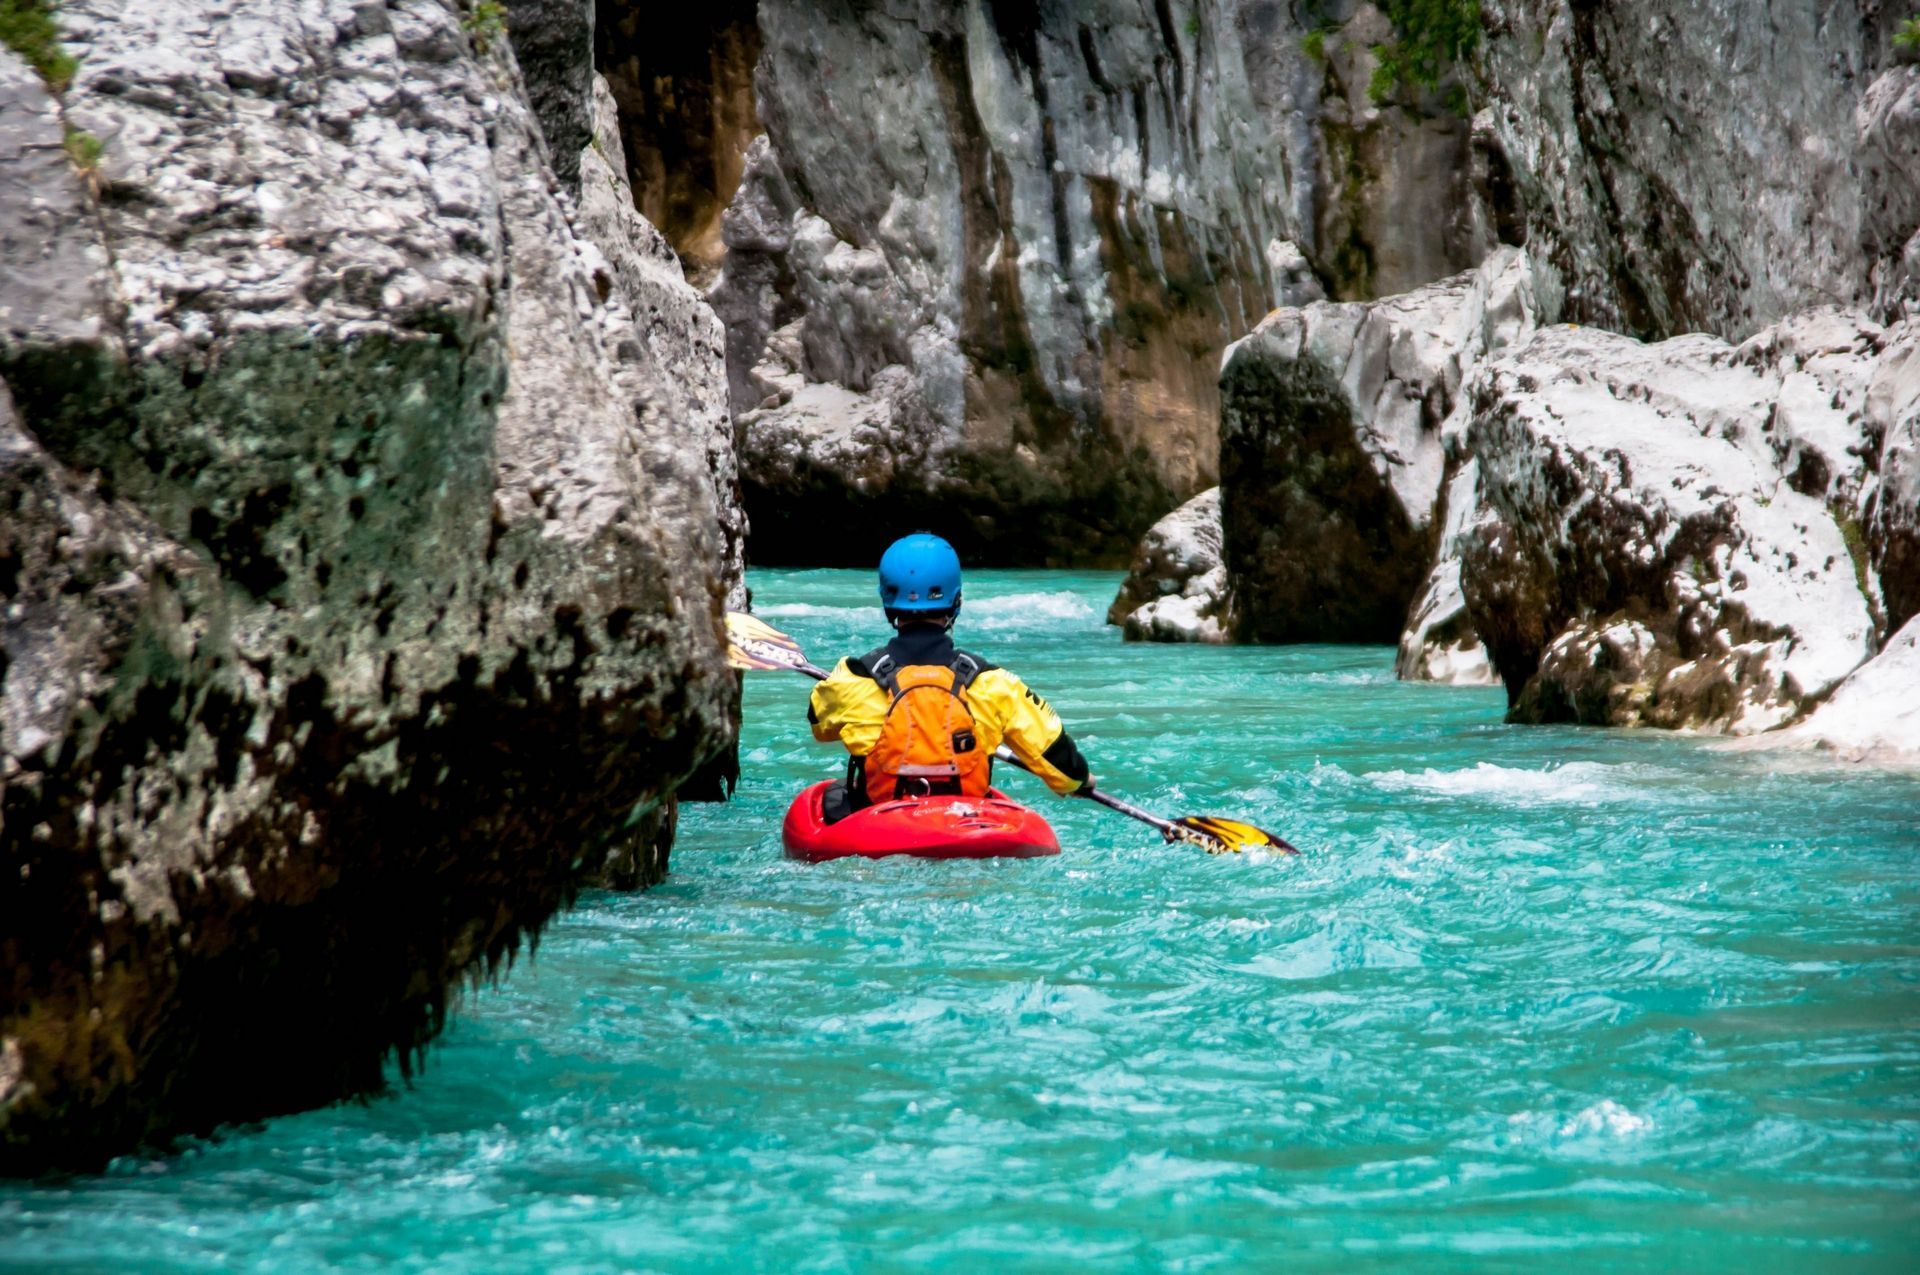 Kayak School in Bovec (1h) Bovec, Triglav National Park, Slovenia